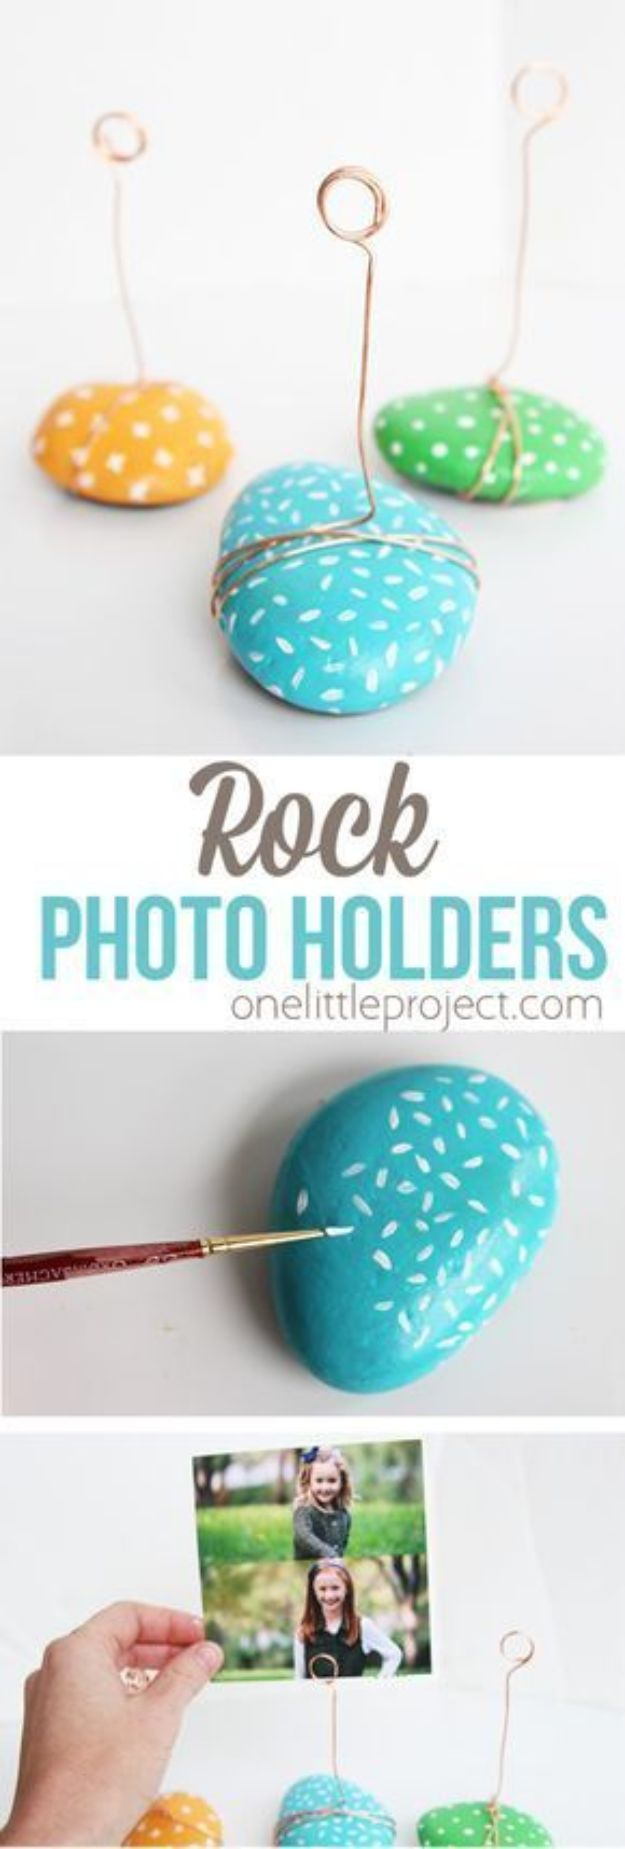 Most Profitable Crafts to Sell - DIY Crafts To Make and Sell - DIY Painted Rock Photo Holders - DIY Gifts for Mom and Dad - Cheap DIY Ideas to Sell for Money - Teen Crafts You Can Sell